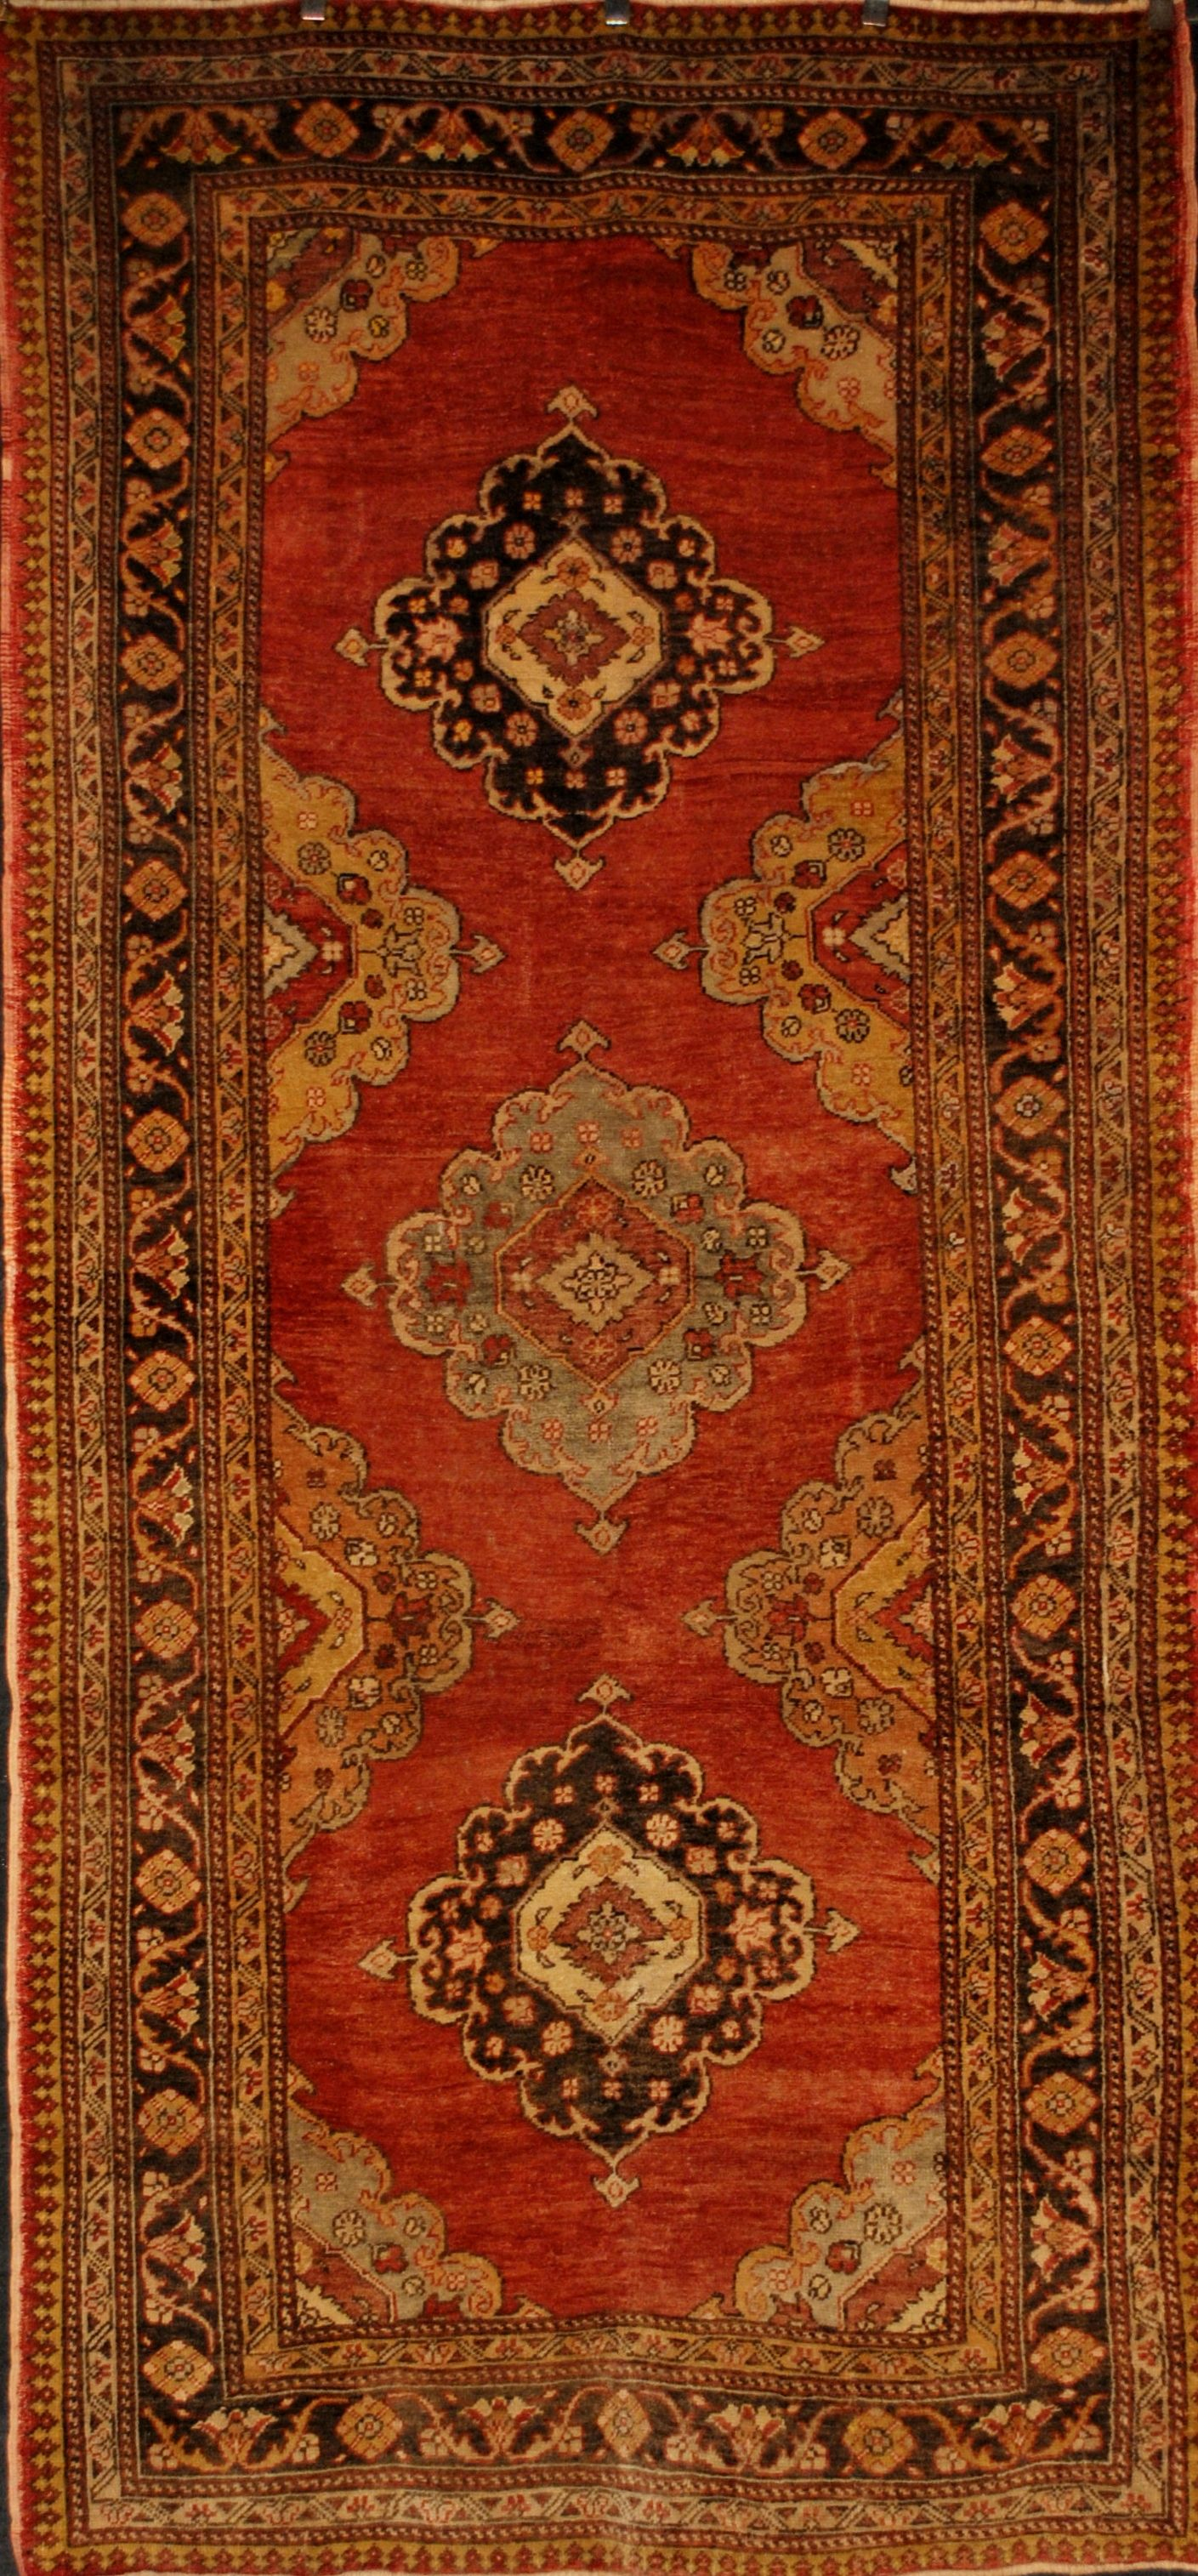 FR4492 Antique Turkish Konya. Rugs. Home Décor. Antique Rugs. Old ...